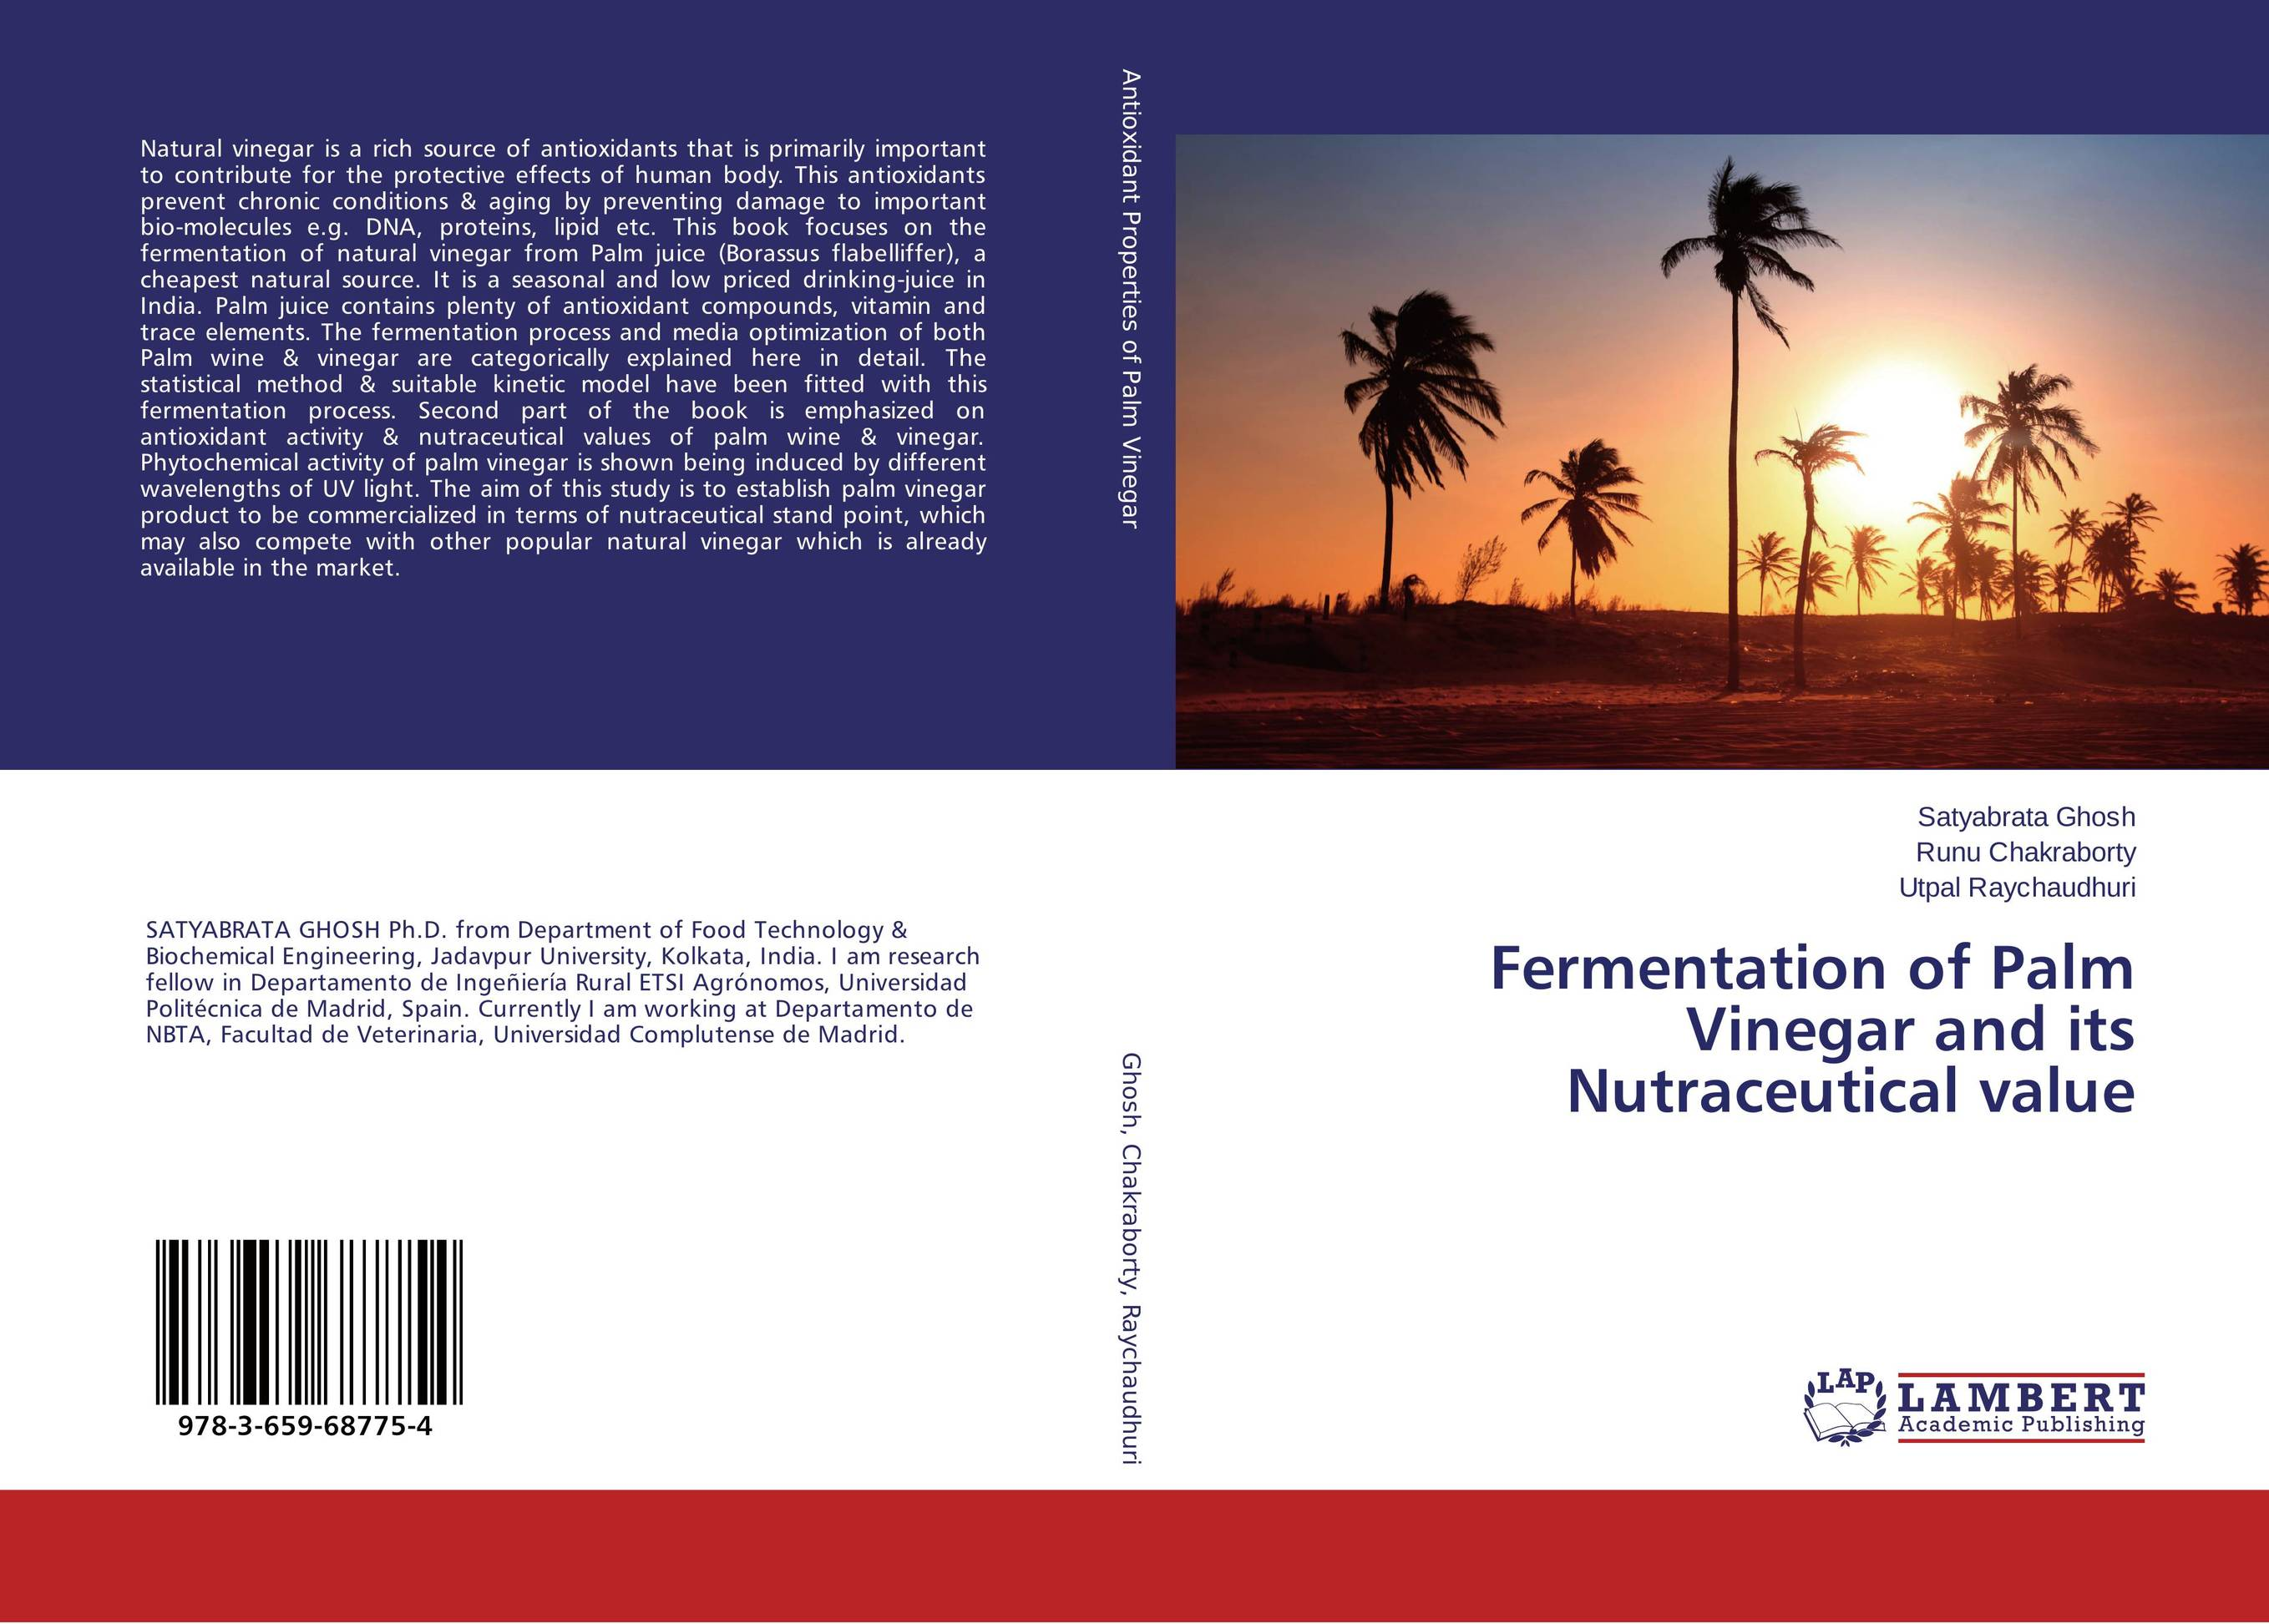 Fermentation of Palm Vinegar and its Nutraceutical value